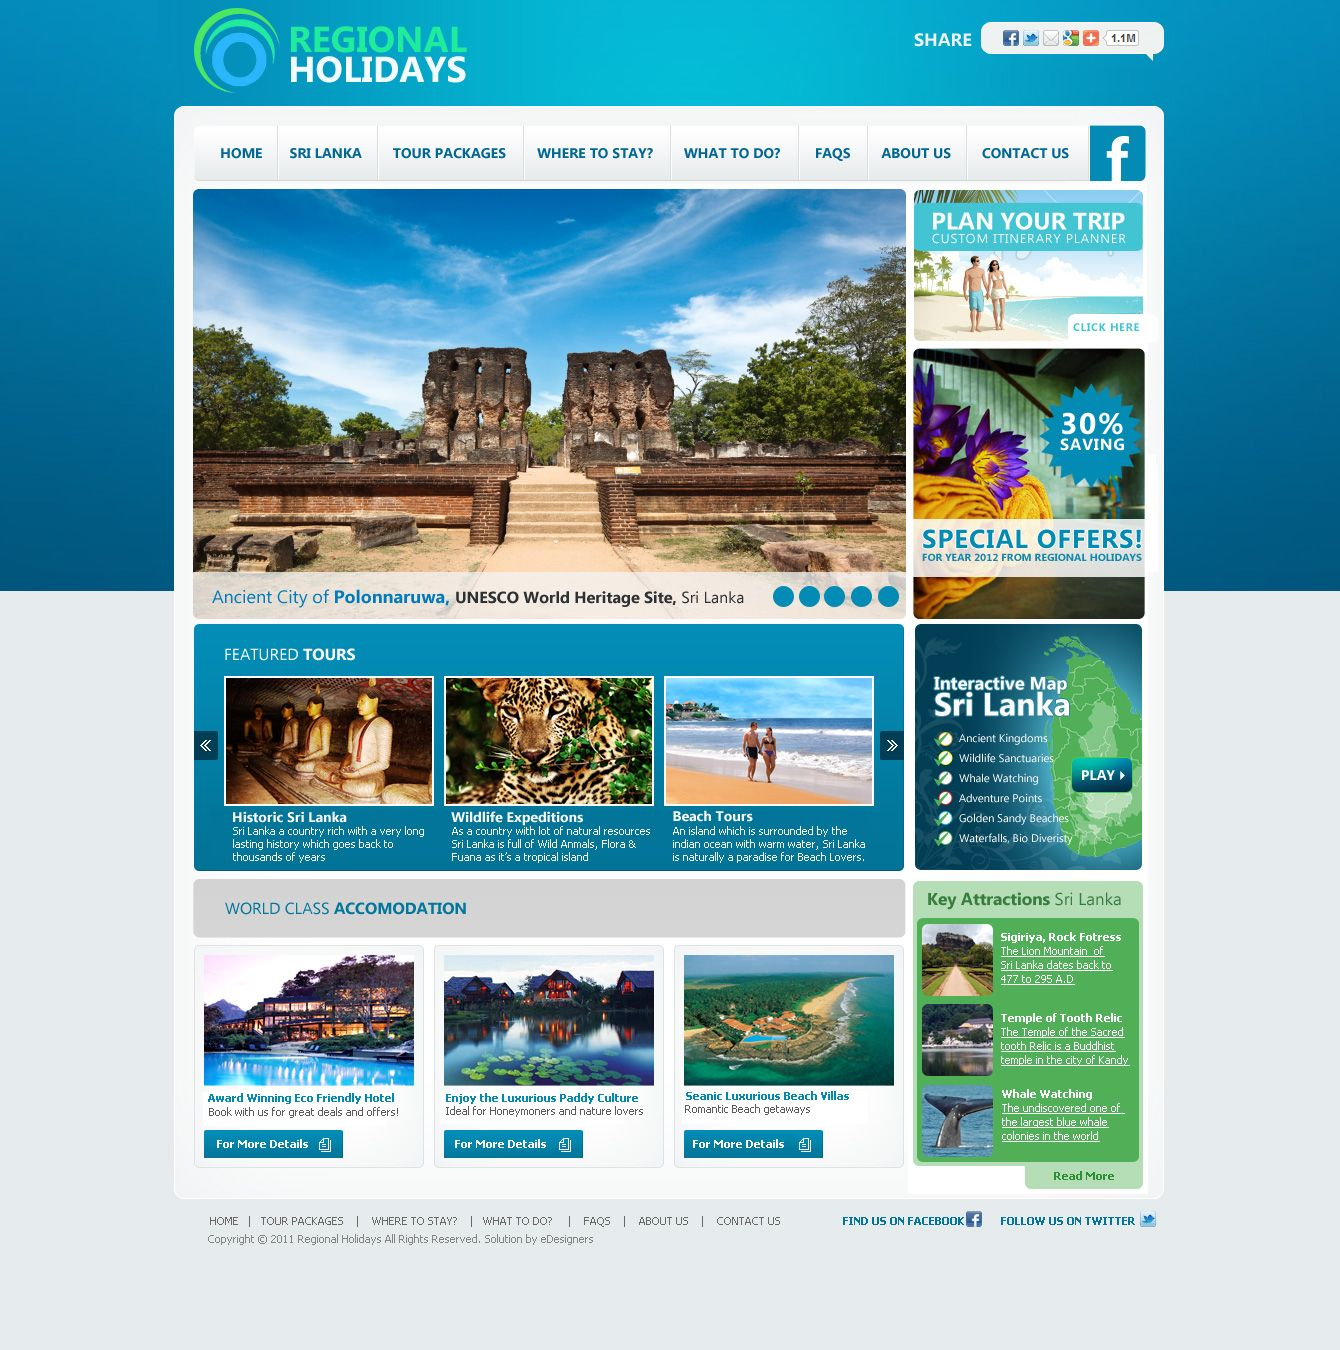 Proposed Design Template For Regional Holidays By Edesigners